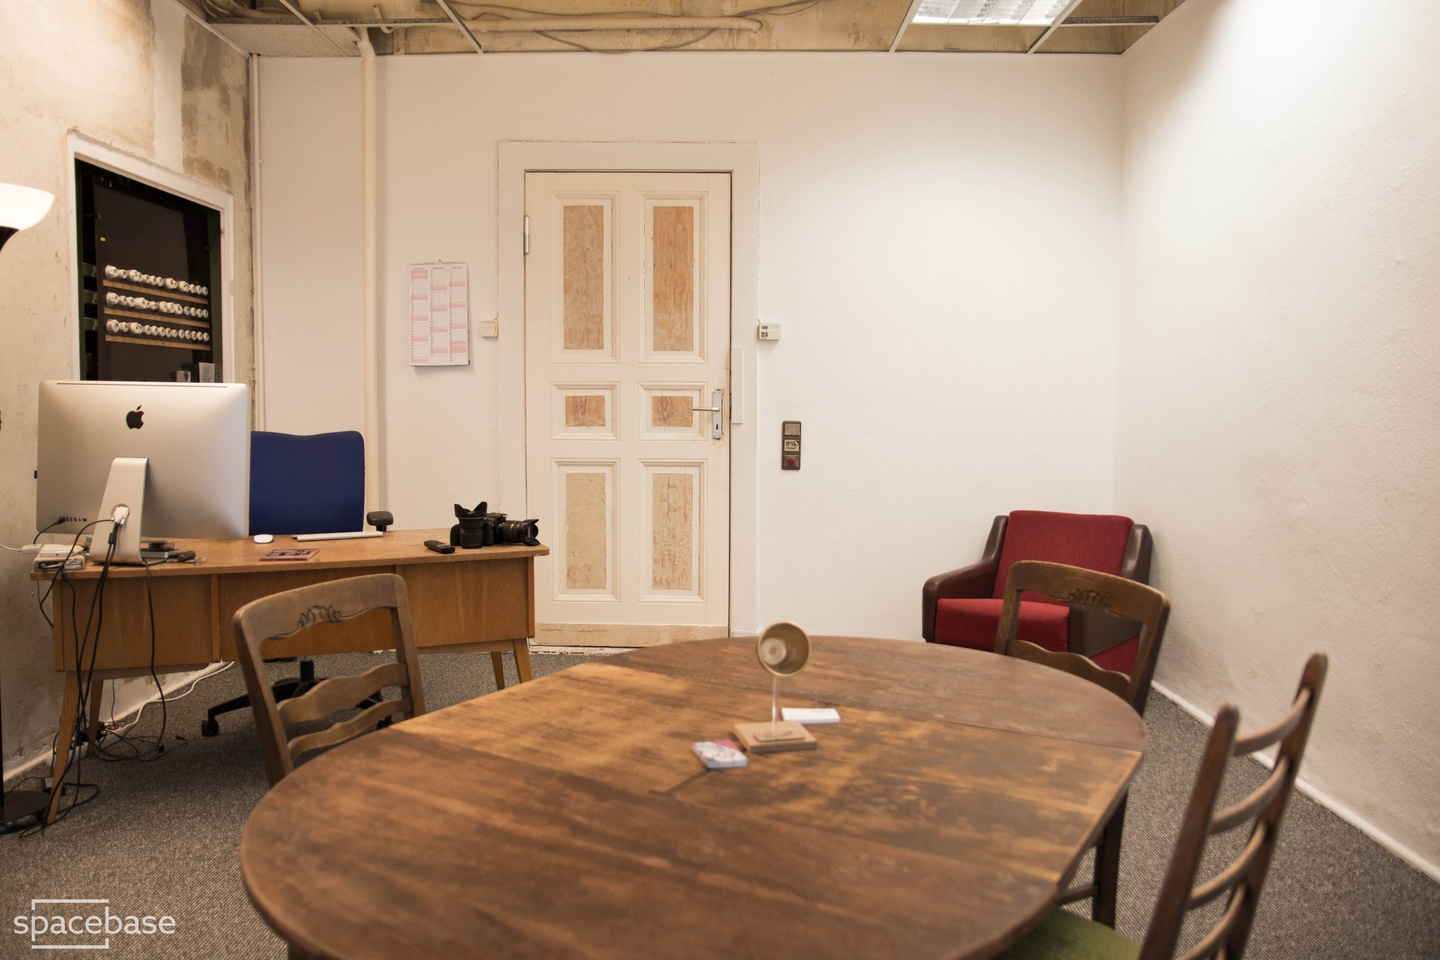 Berlin conference rooms Coworking space creative office image 2